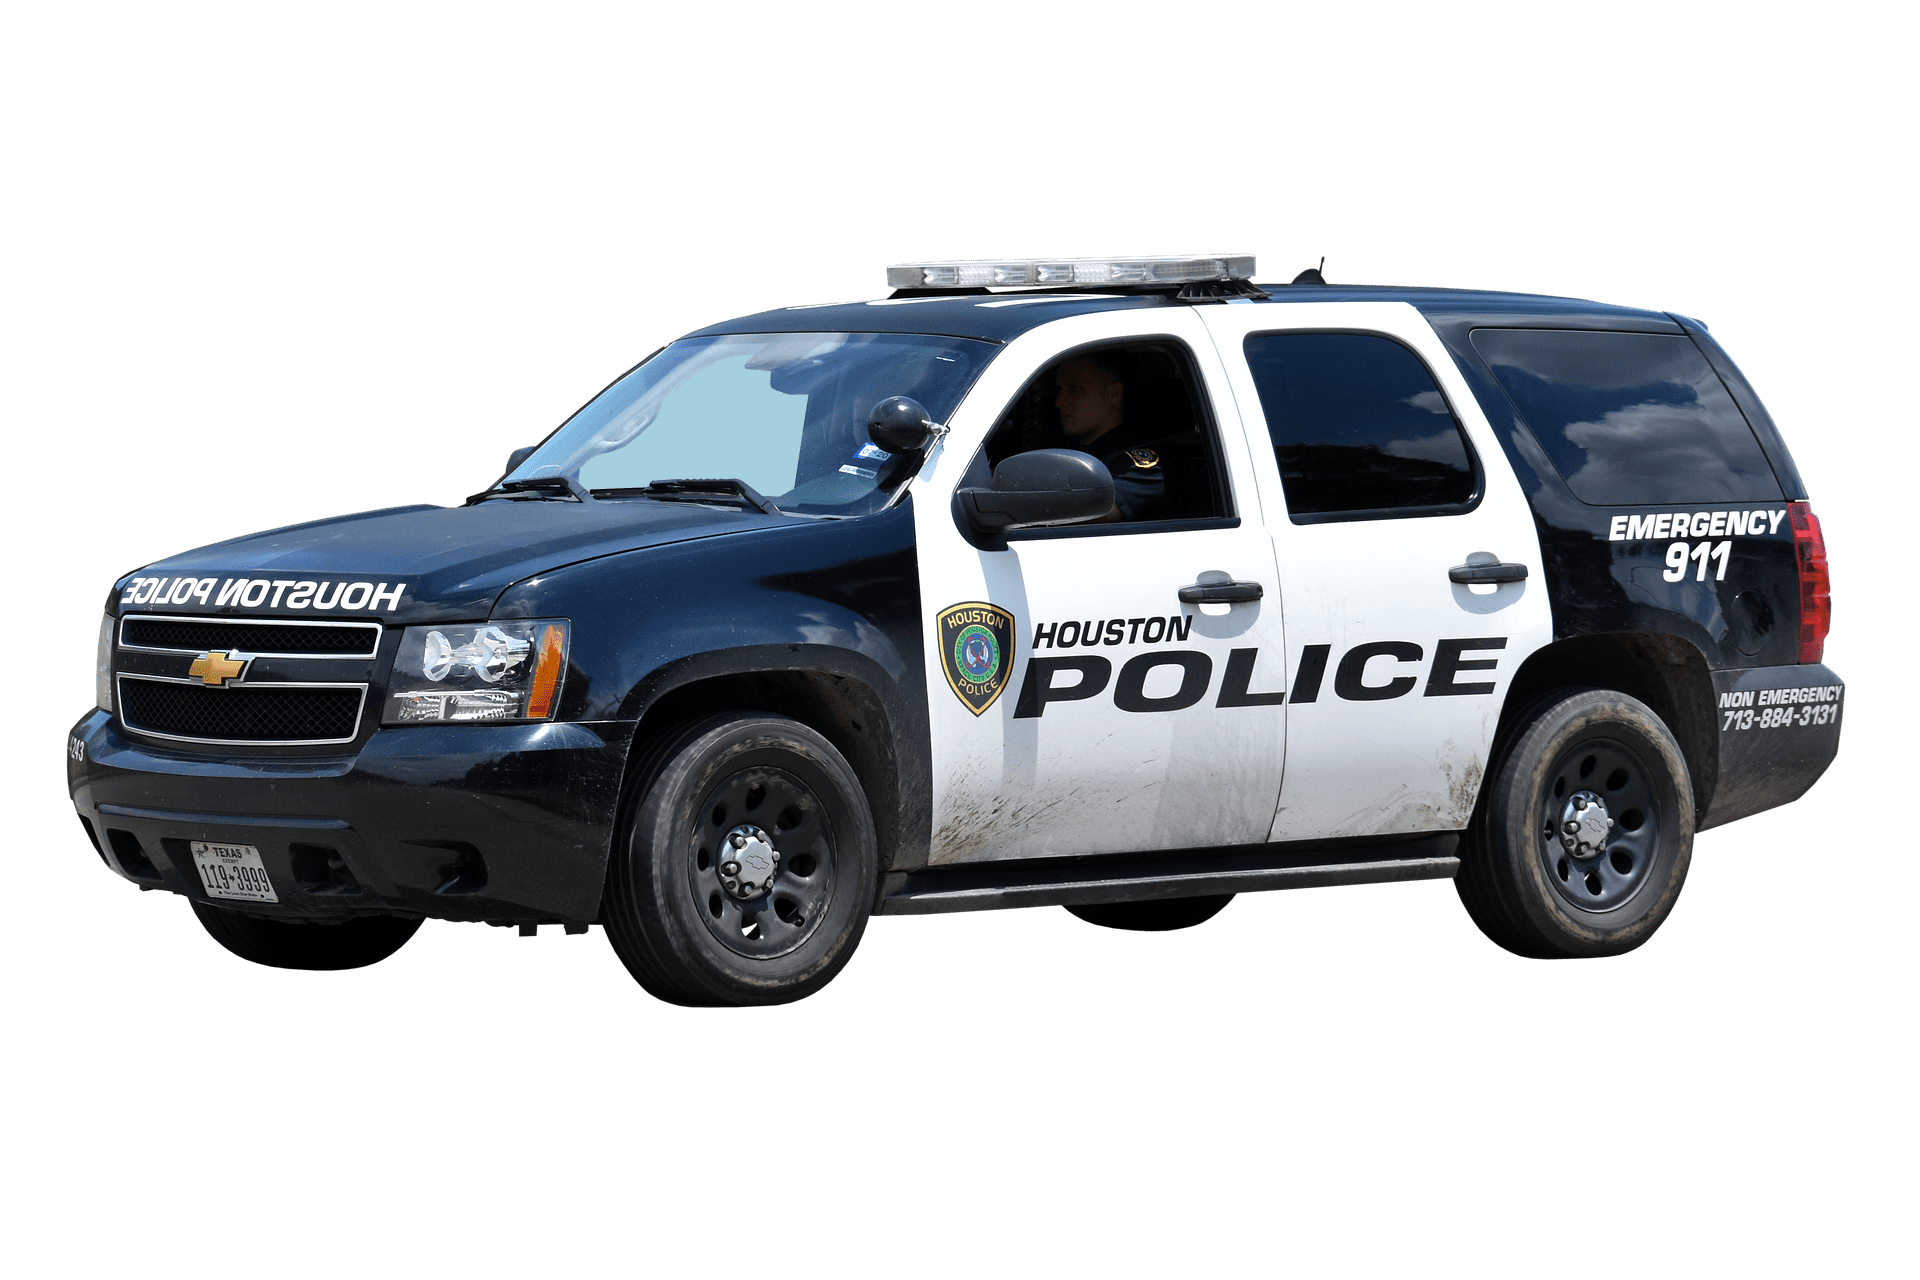 A photograph of a police vehicle | Source: Pixabay